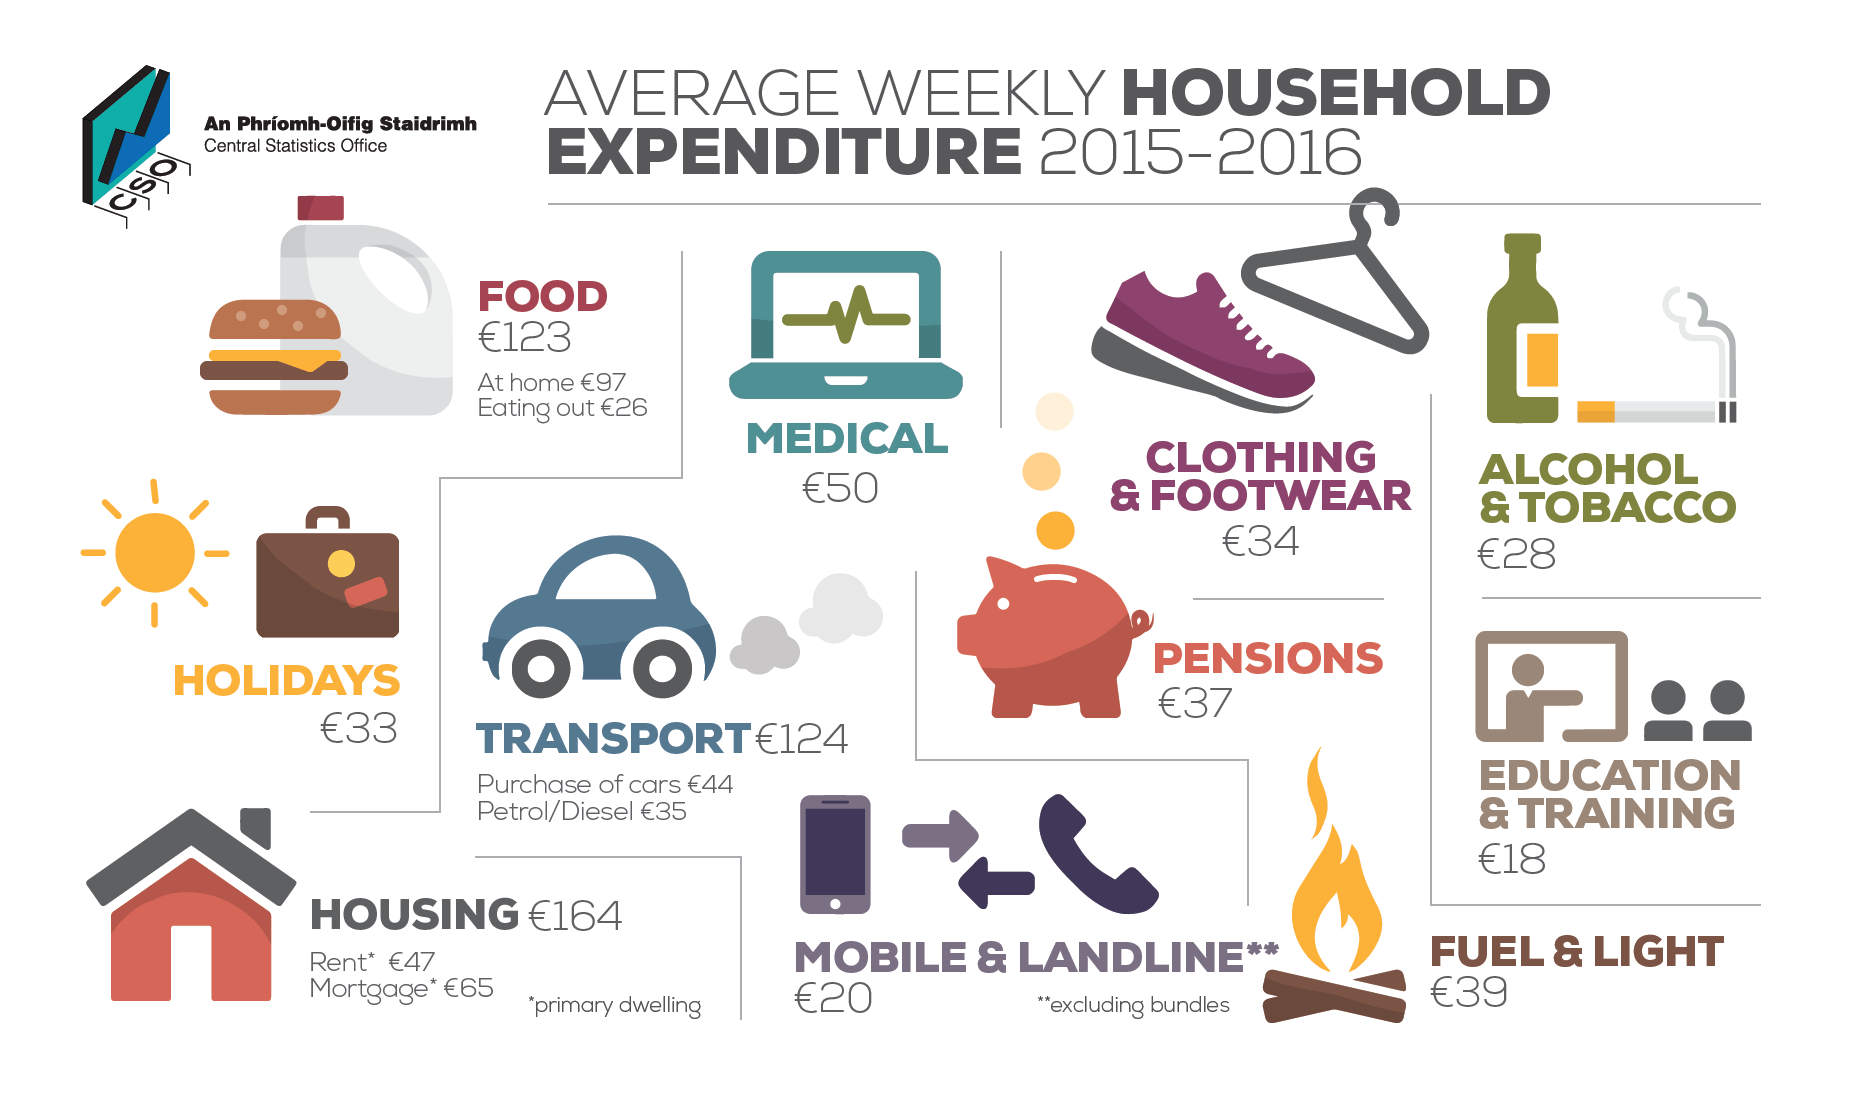 The Average Weekly Household Expenditure In Ireland Has